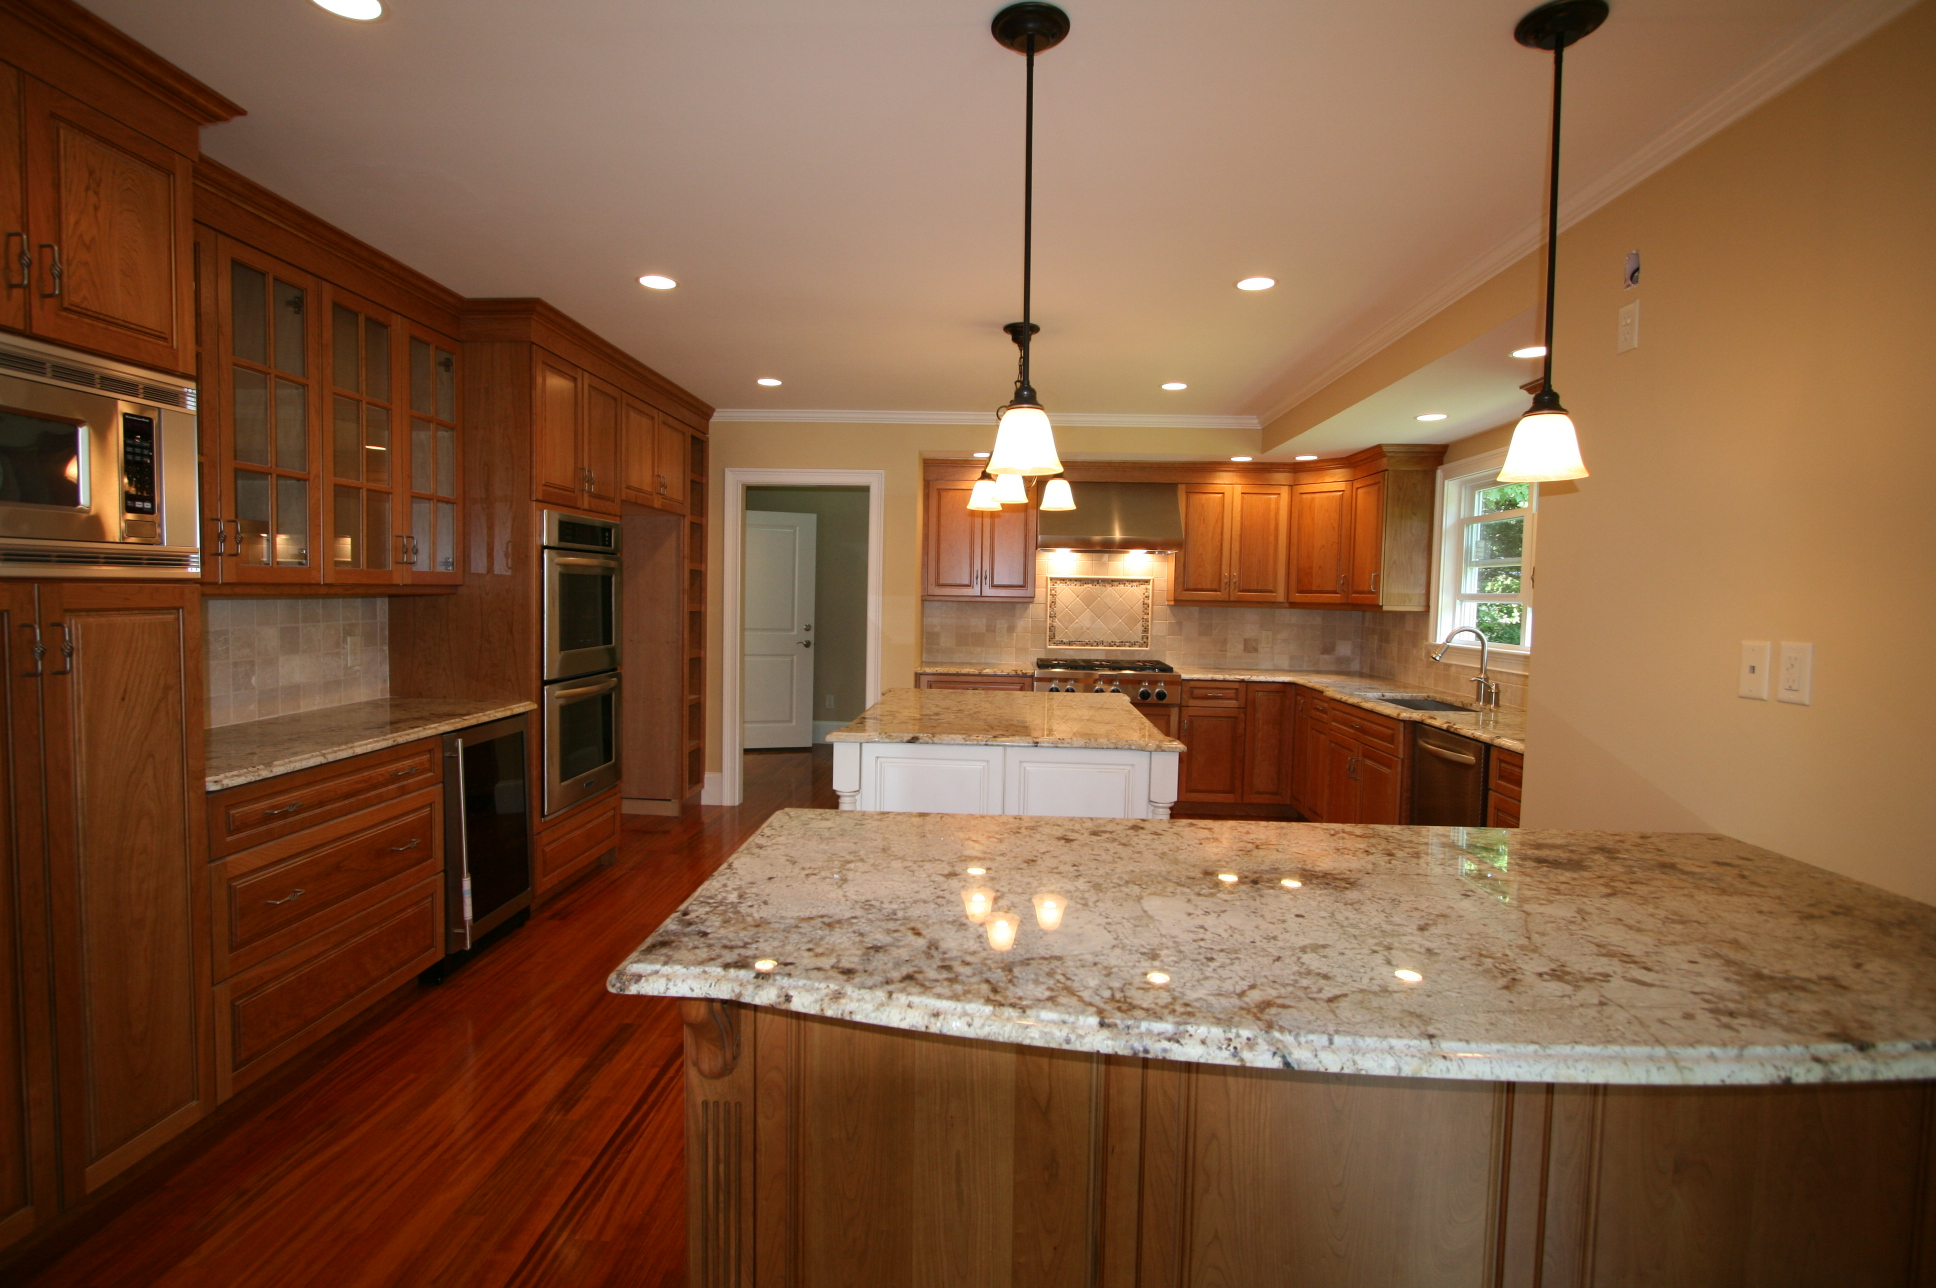 Check out the pics of new kitchens halliday construction - Images of kitchens ...